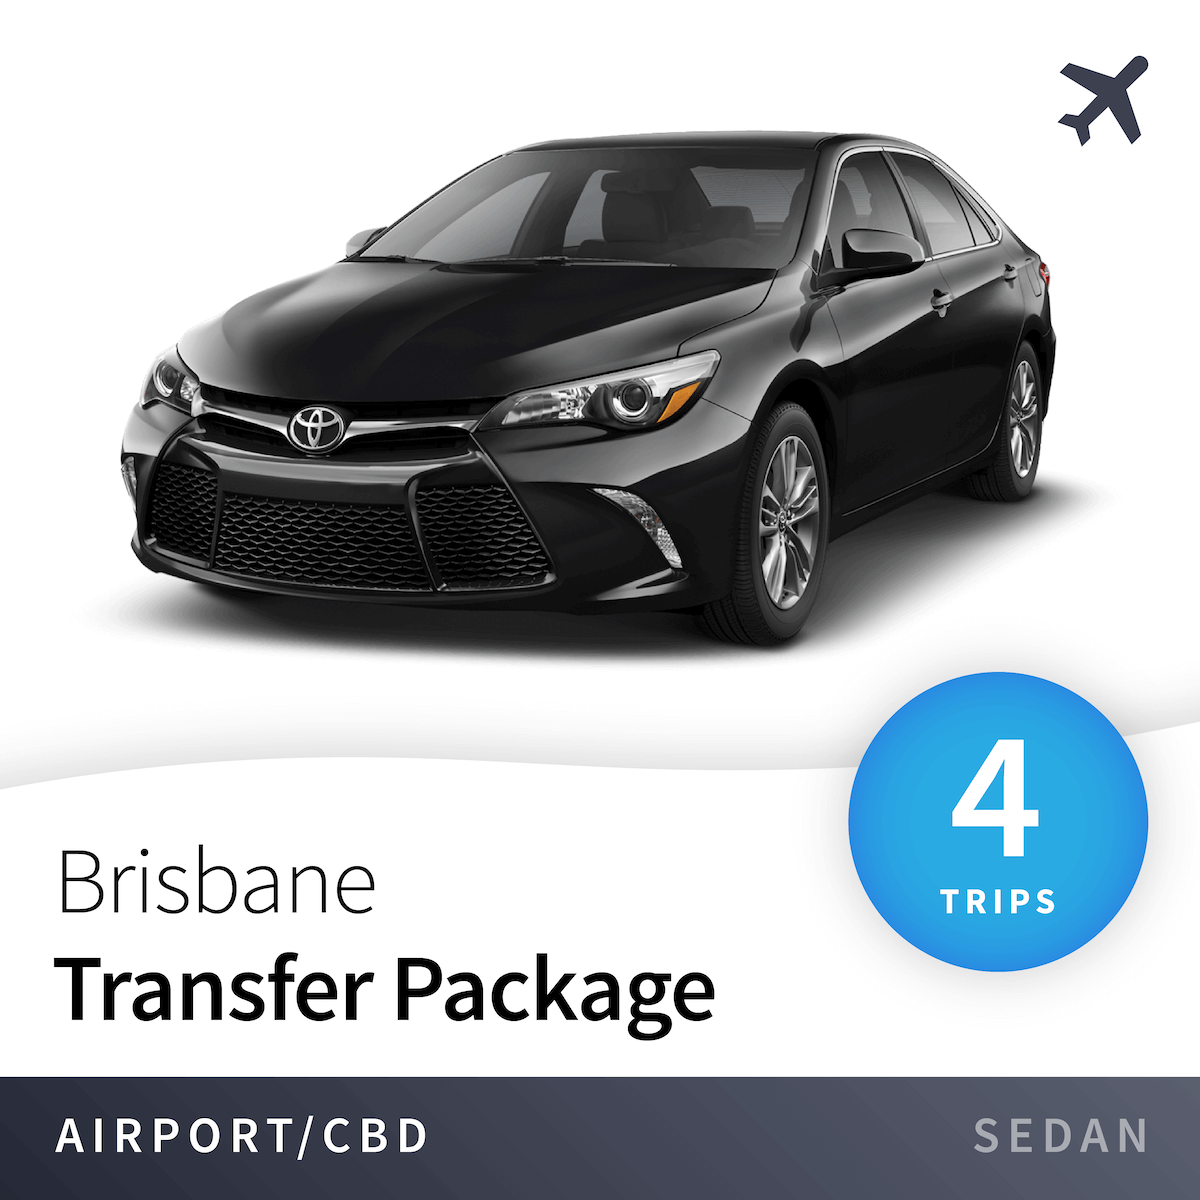 Brisbane Airport Transfer Package - Sedan (4 Trips) 9